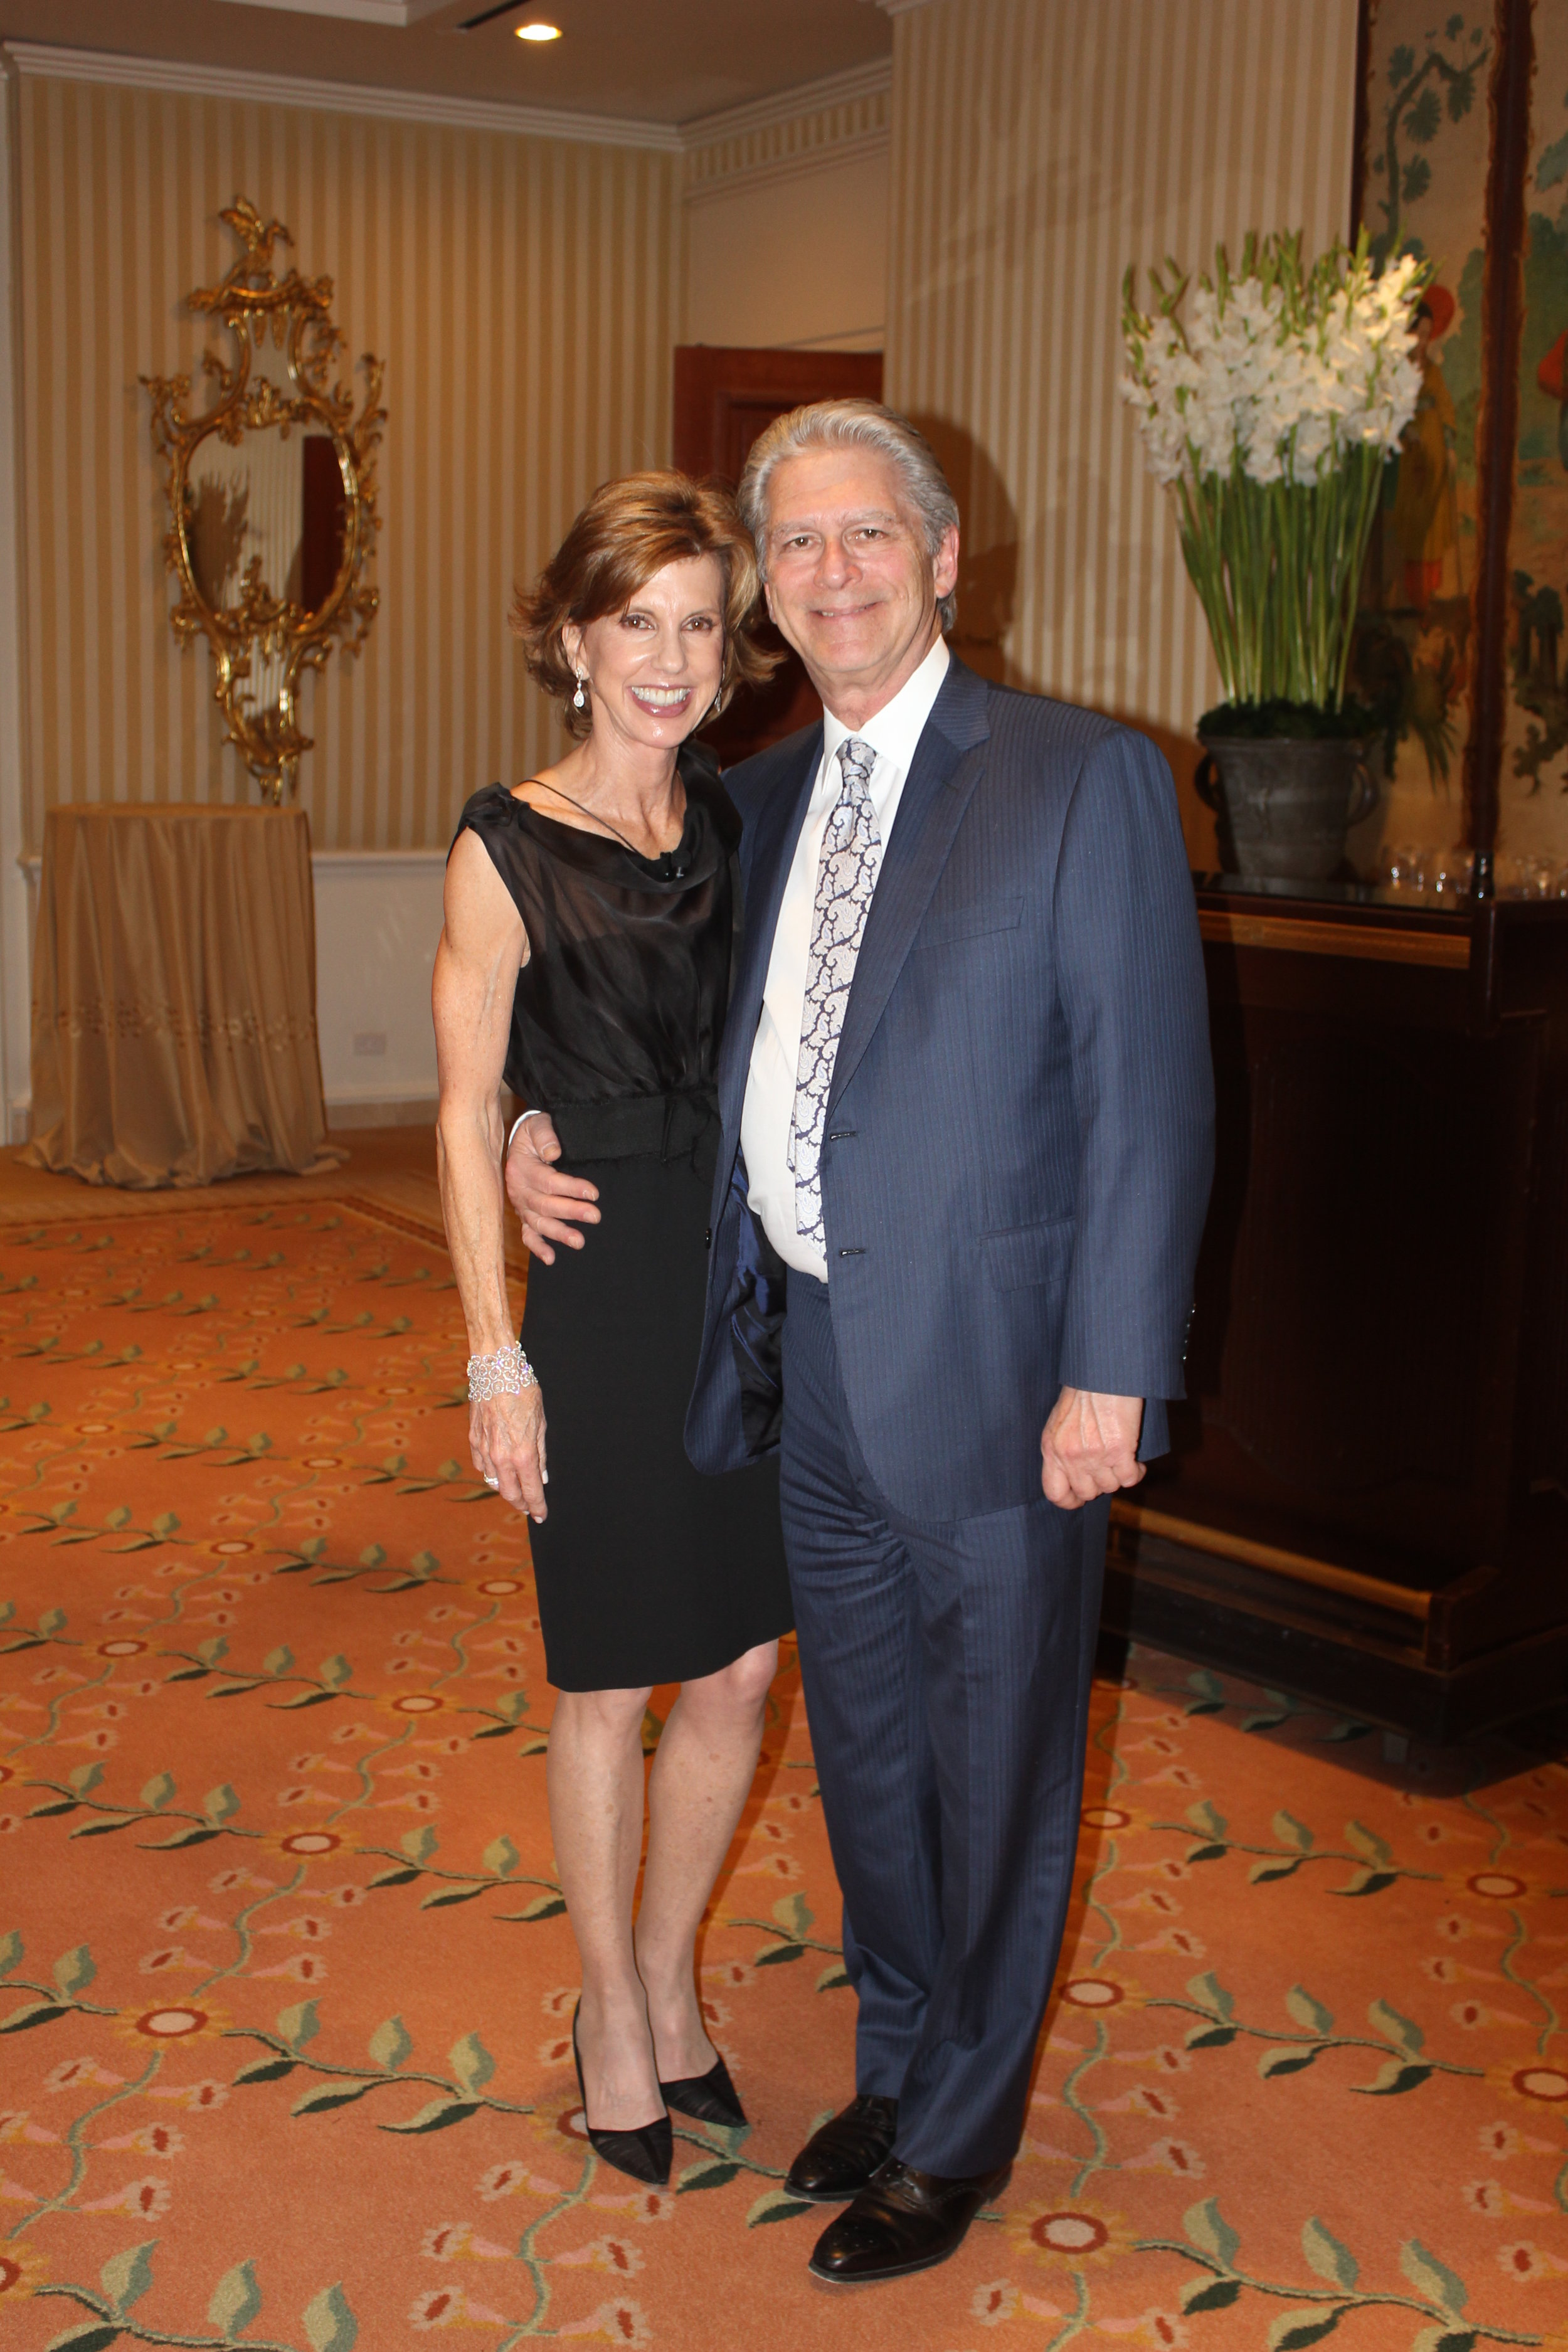 Laurie MacCaskill & Dr. Isacoff at a PanCAN Research Award Dinner in Laurie's Honor